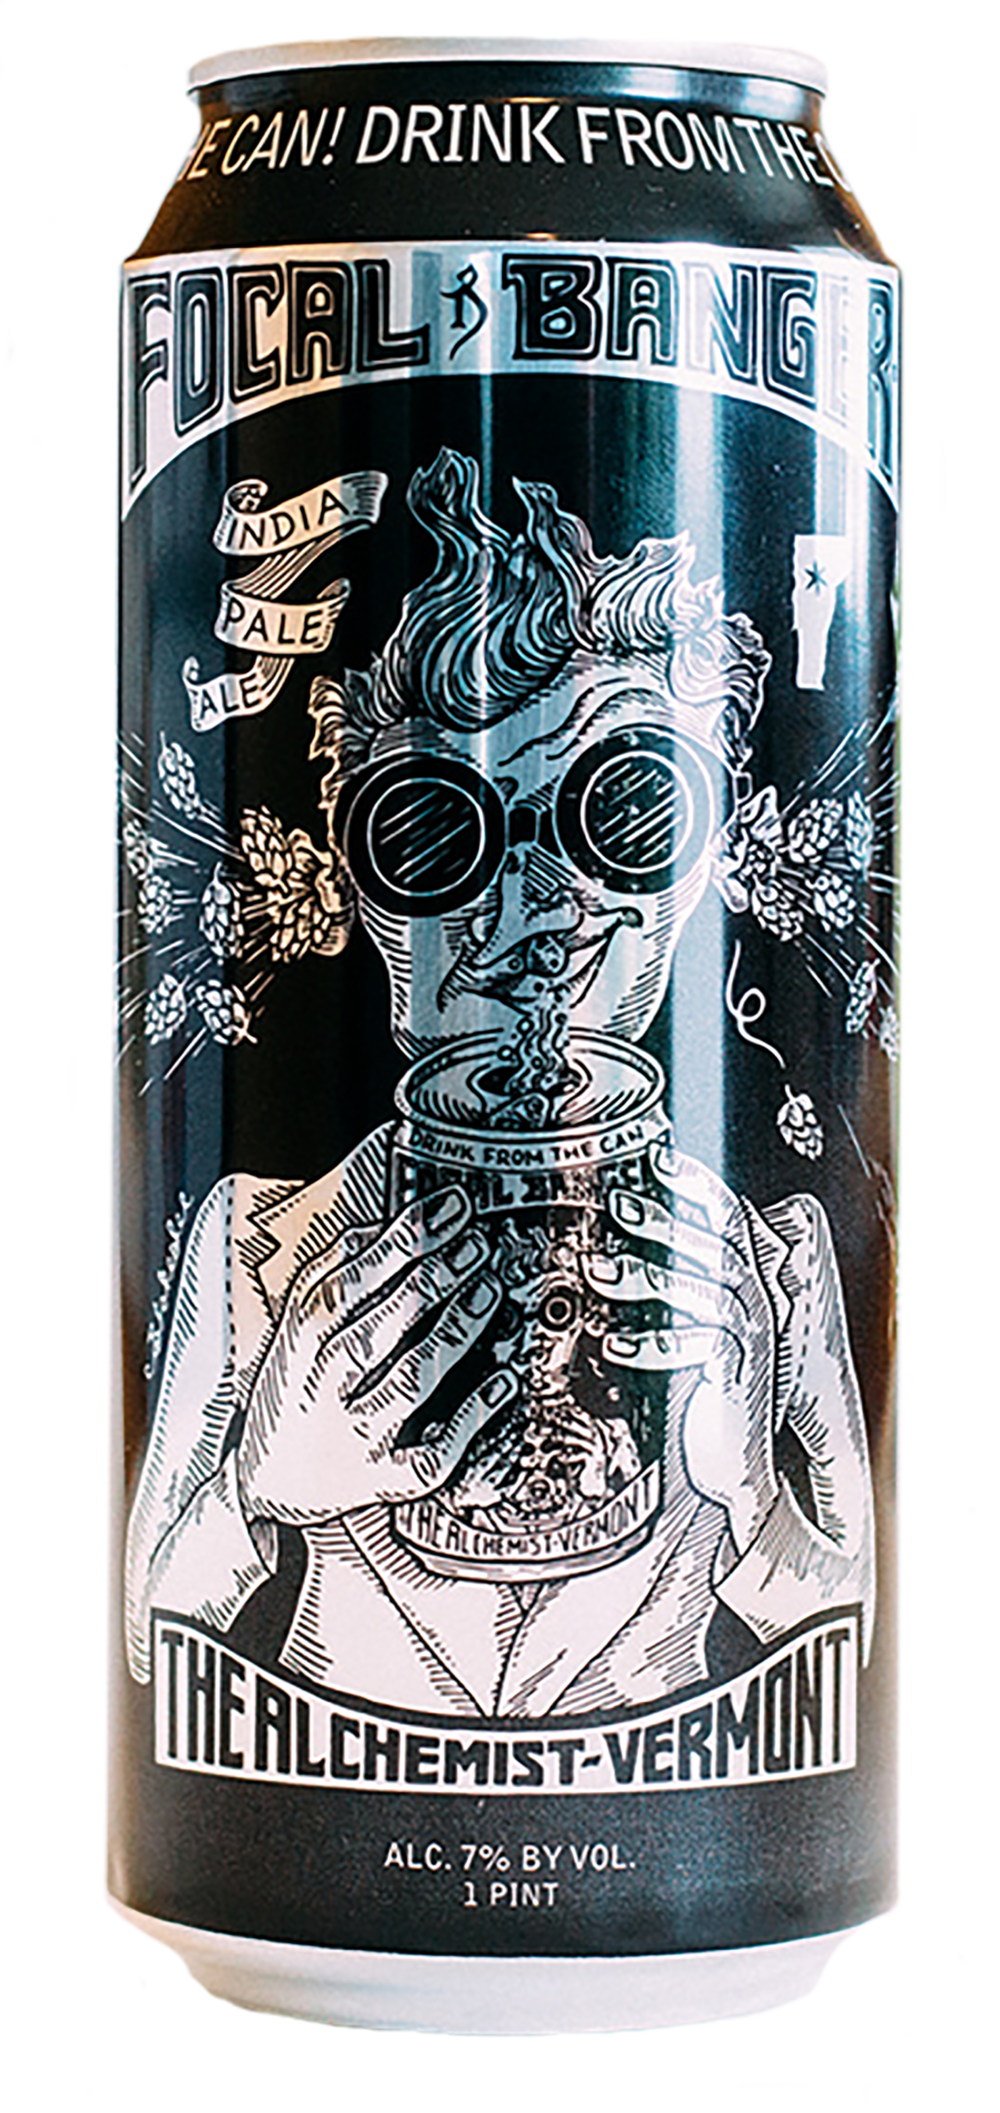 Focal Banger: American IPA 7% ABV - Tried the Heady Topper and thought it was far too strong for you? It's like the Alchemist knew and answered our prayers. Focal Banger is the newer of the two brews. I find this one far lighter and still as delicious.